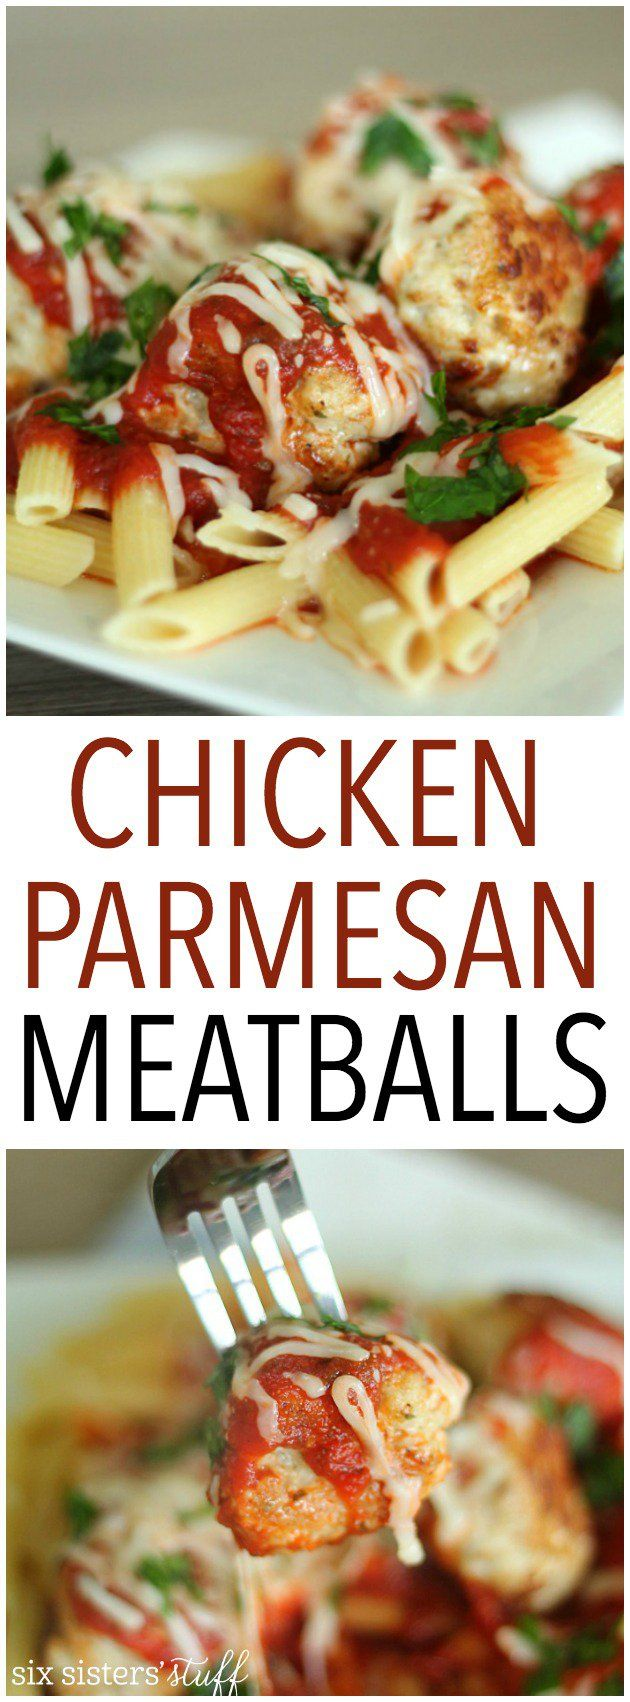 Chicken Parmesan Meatballs Recipe from SixSistersStuff.com. So easy and delicious!